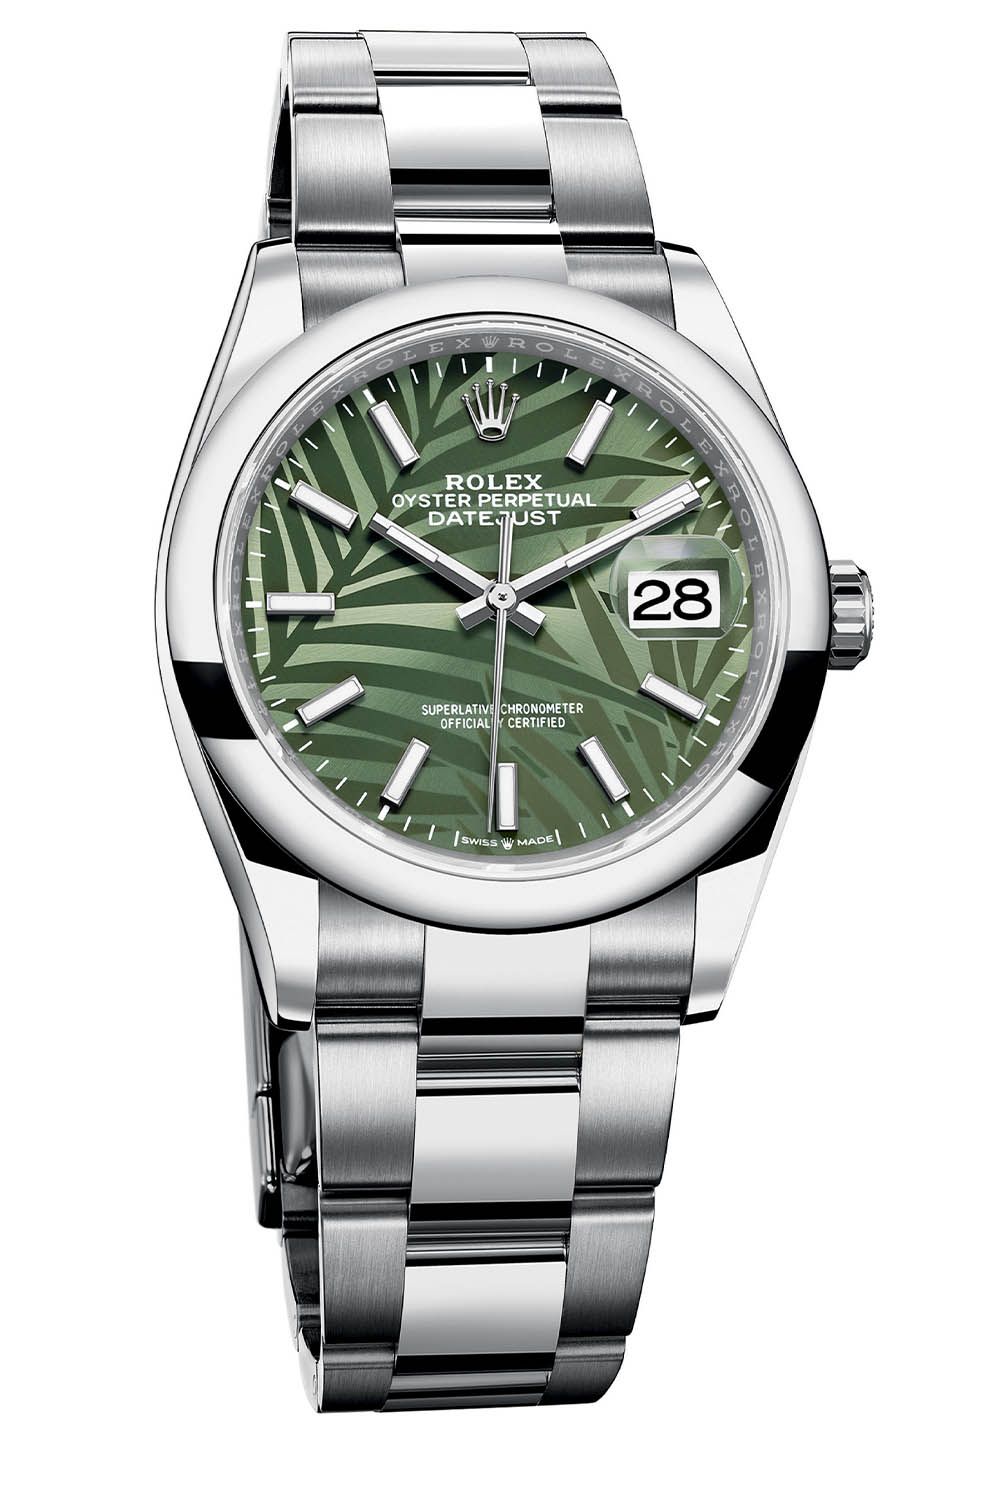 Rolex Oyster Perpetual Datejust 36 palm dial